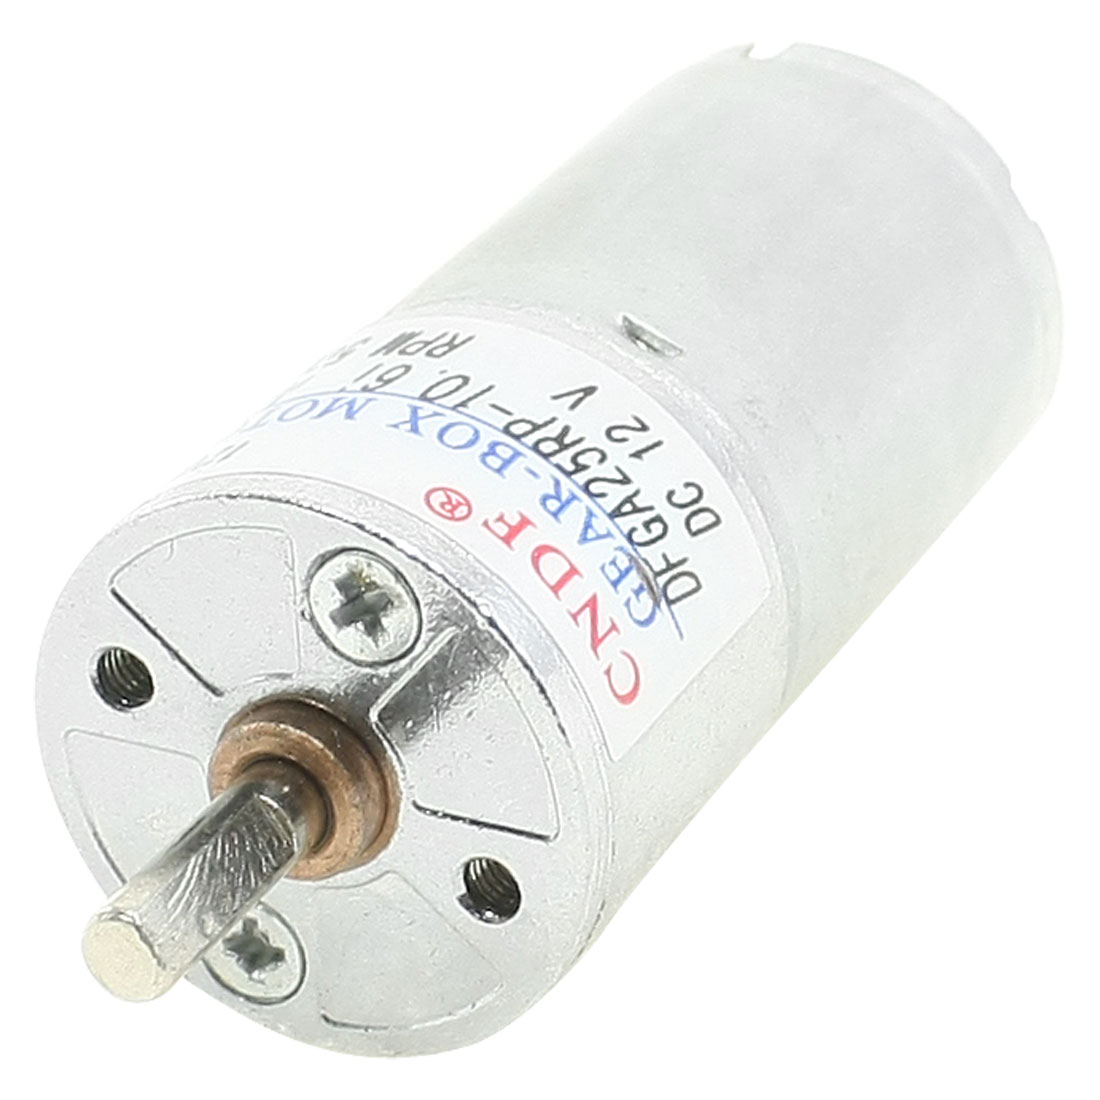 4mmx11mm Shaft 25mm Dia Cylinder Shaped Gear Motor 500 RPM 12V DC